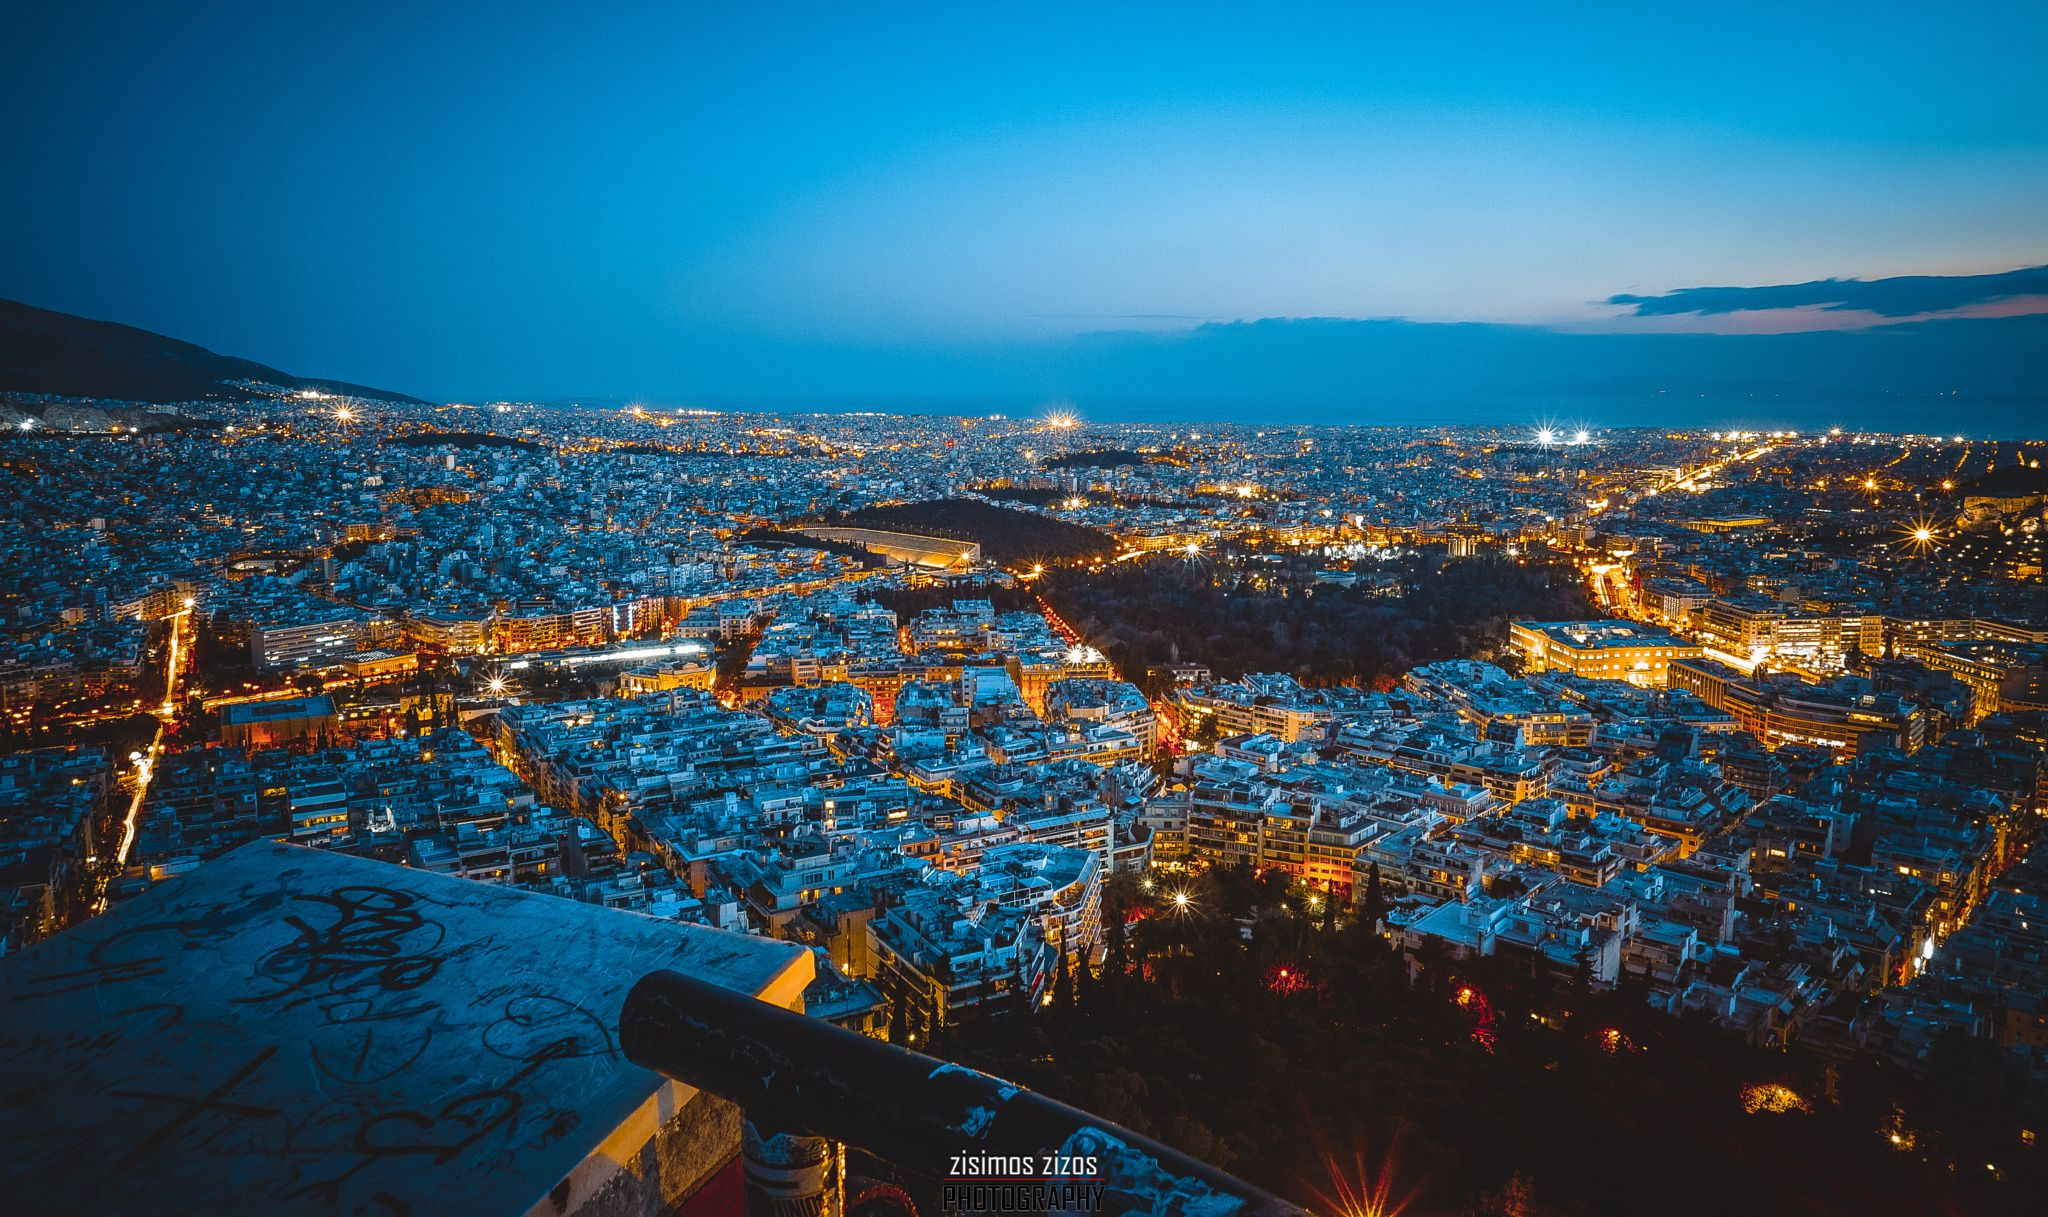 City of Athens - Night view from the City of Athens!